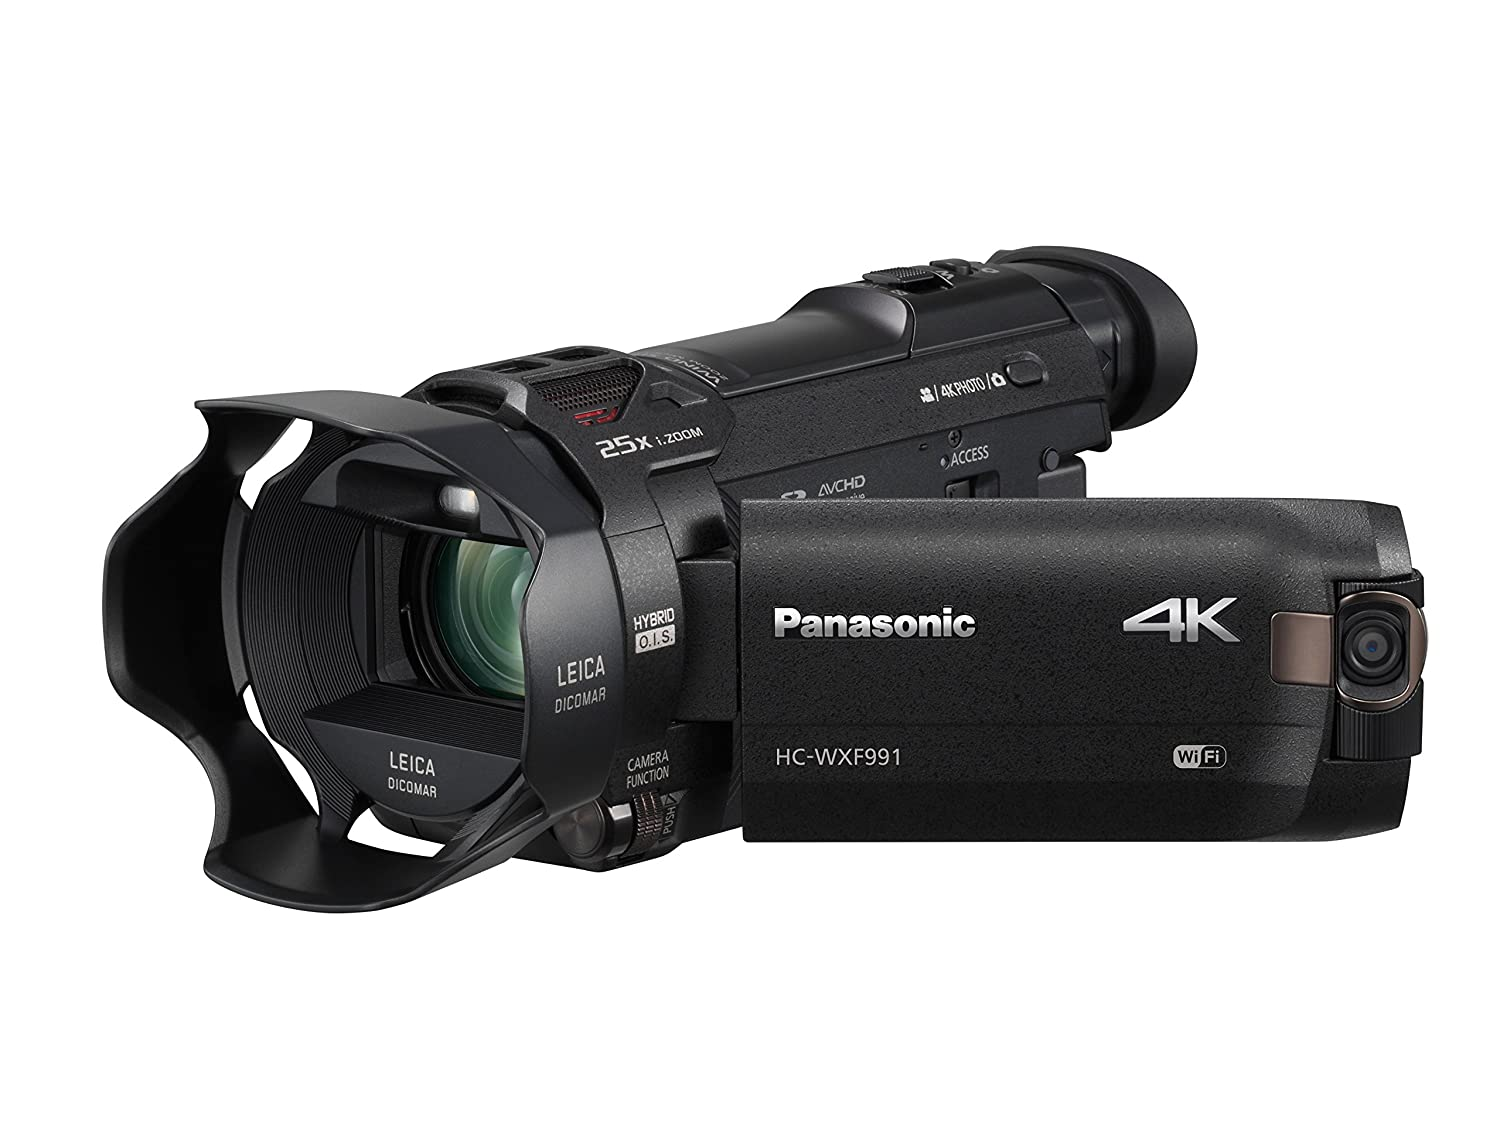 Best Camcorder 2020.Top 10 Best Ultra Hd Camcorders 4k Reviews 2019 2020 On